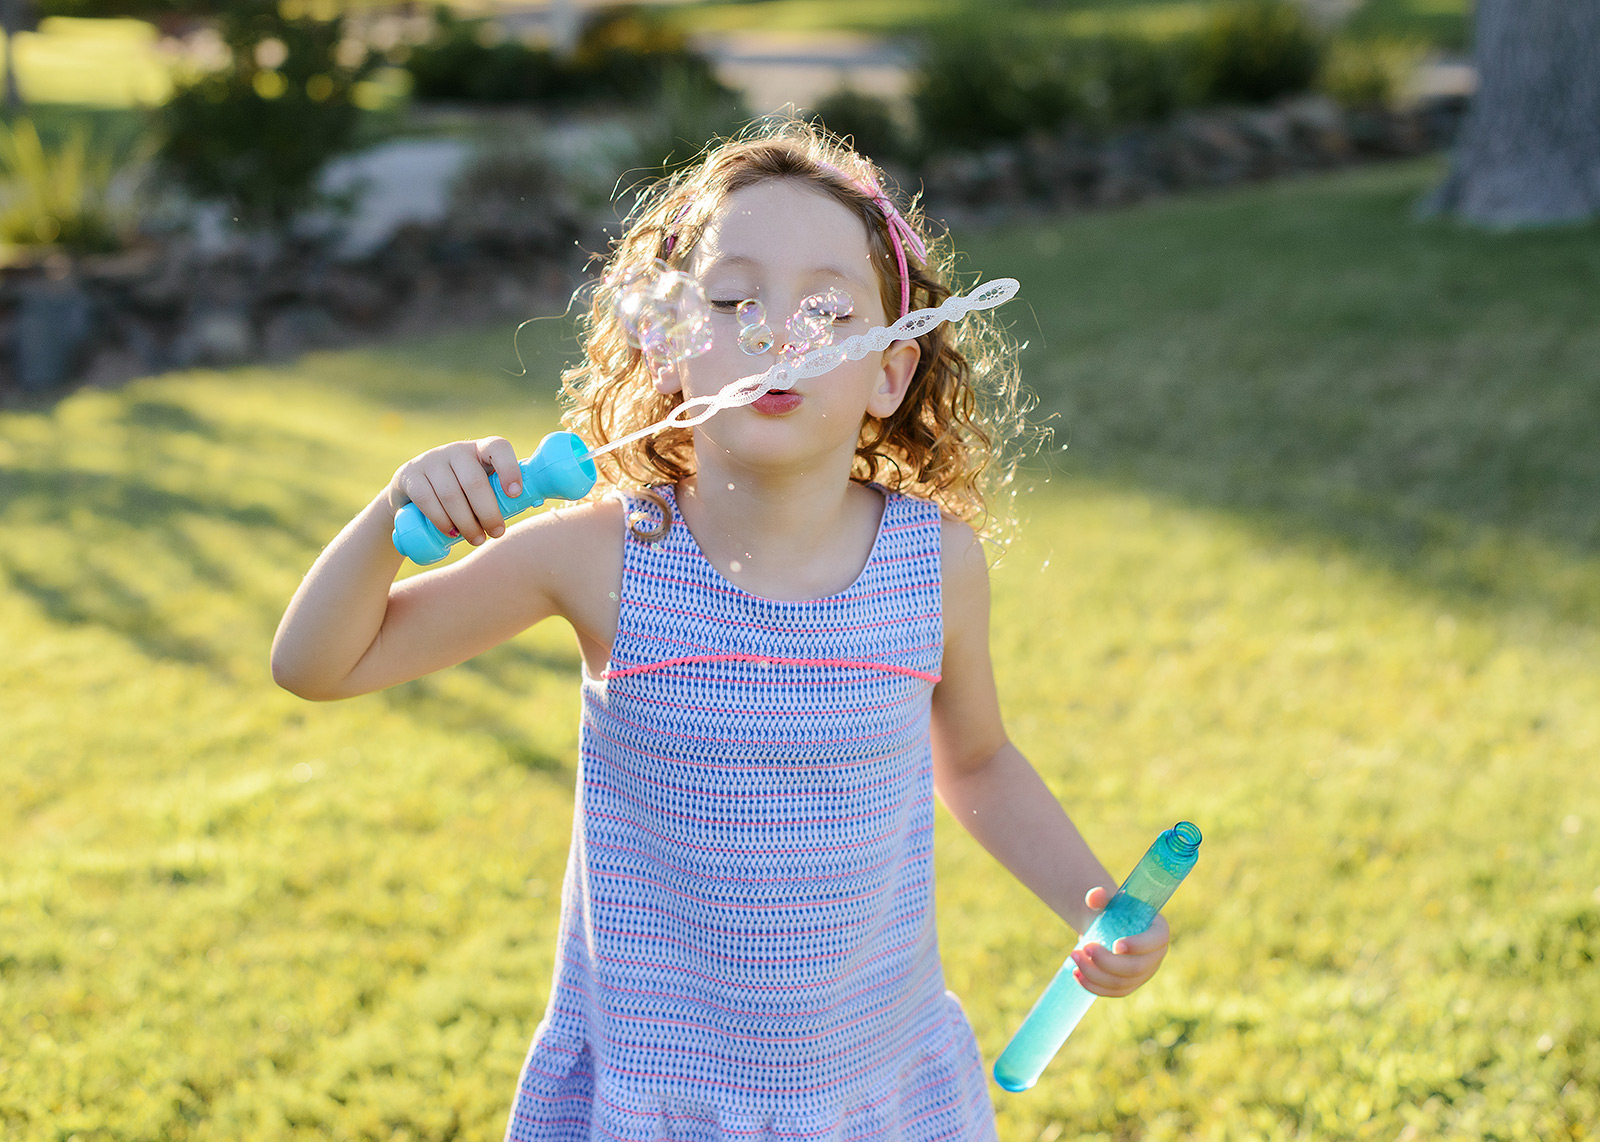 Little girl blowing bubbles in yard outdoors with bubble wand